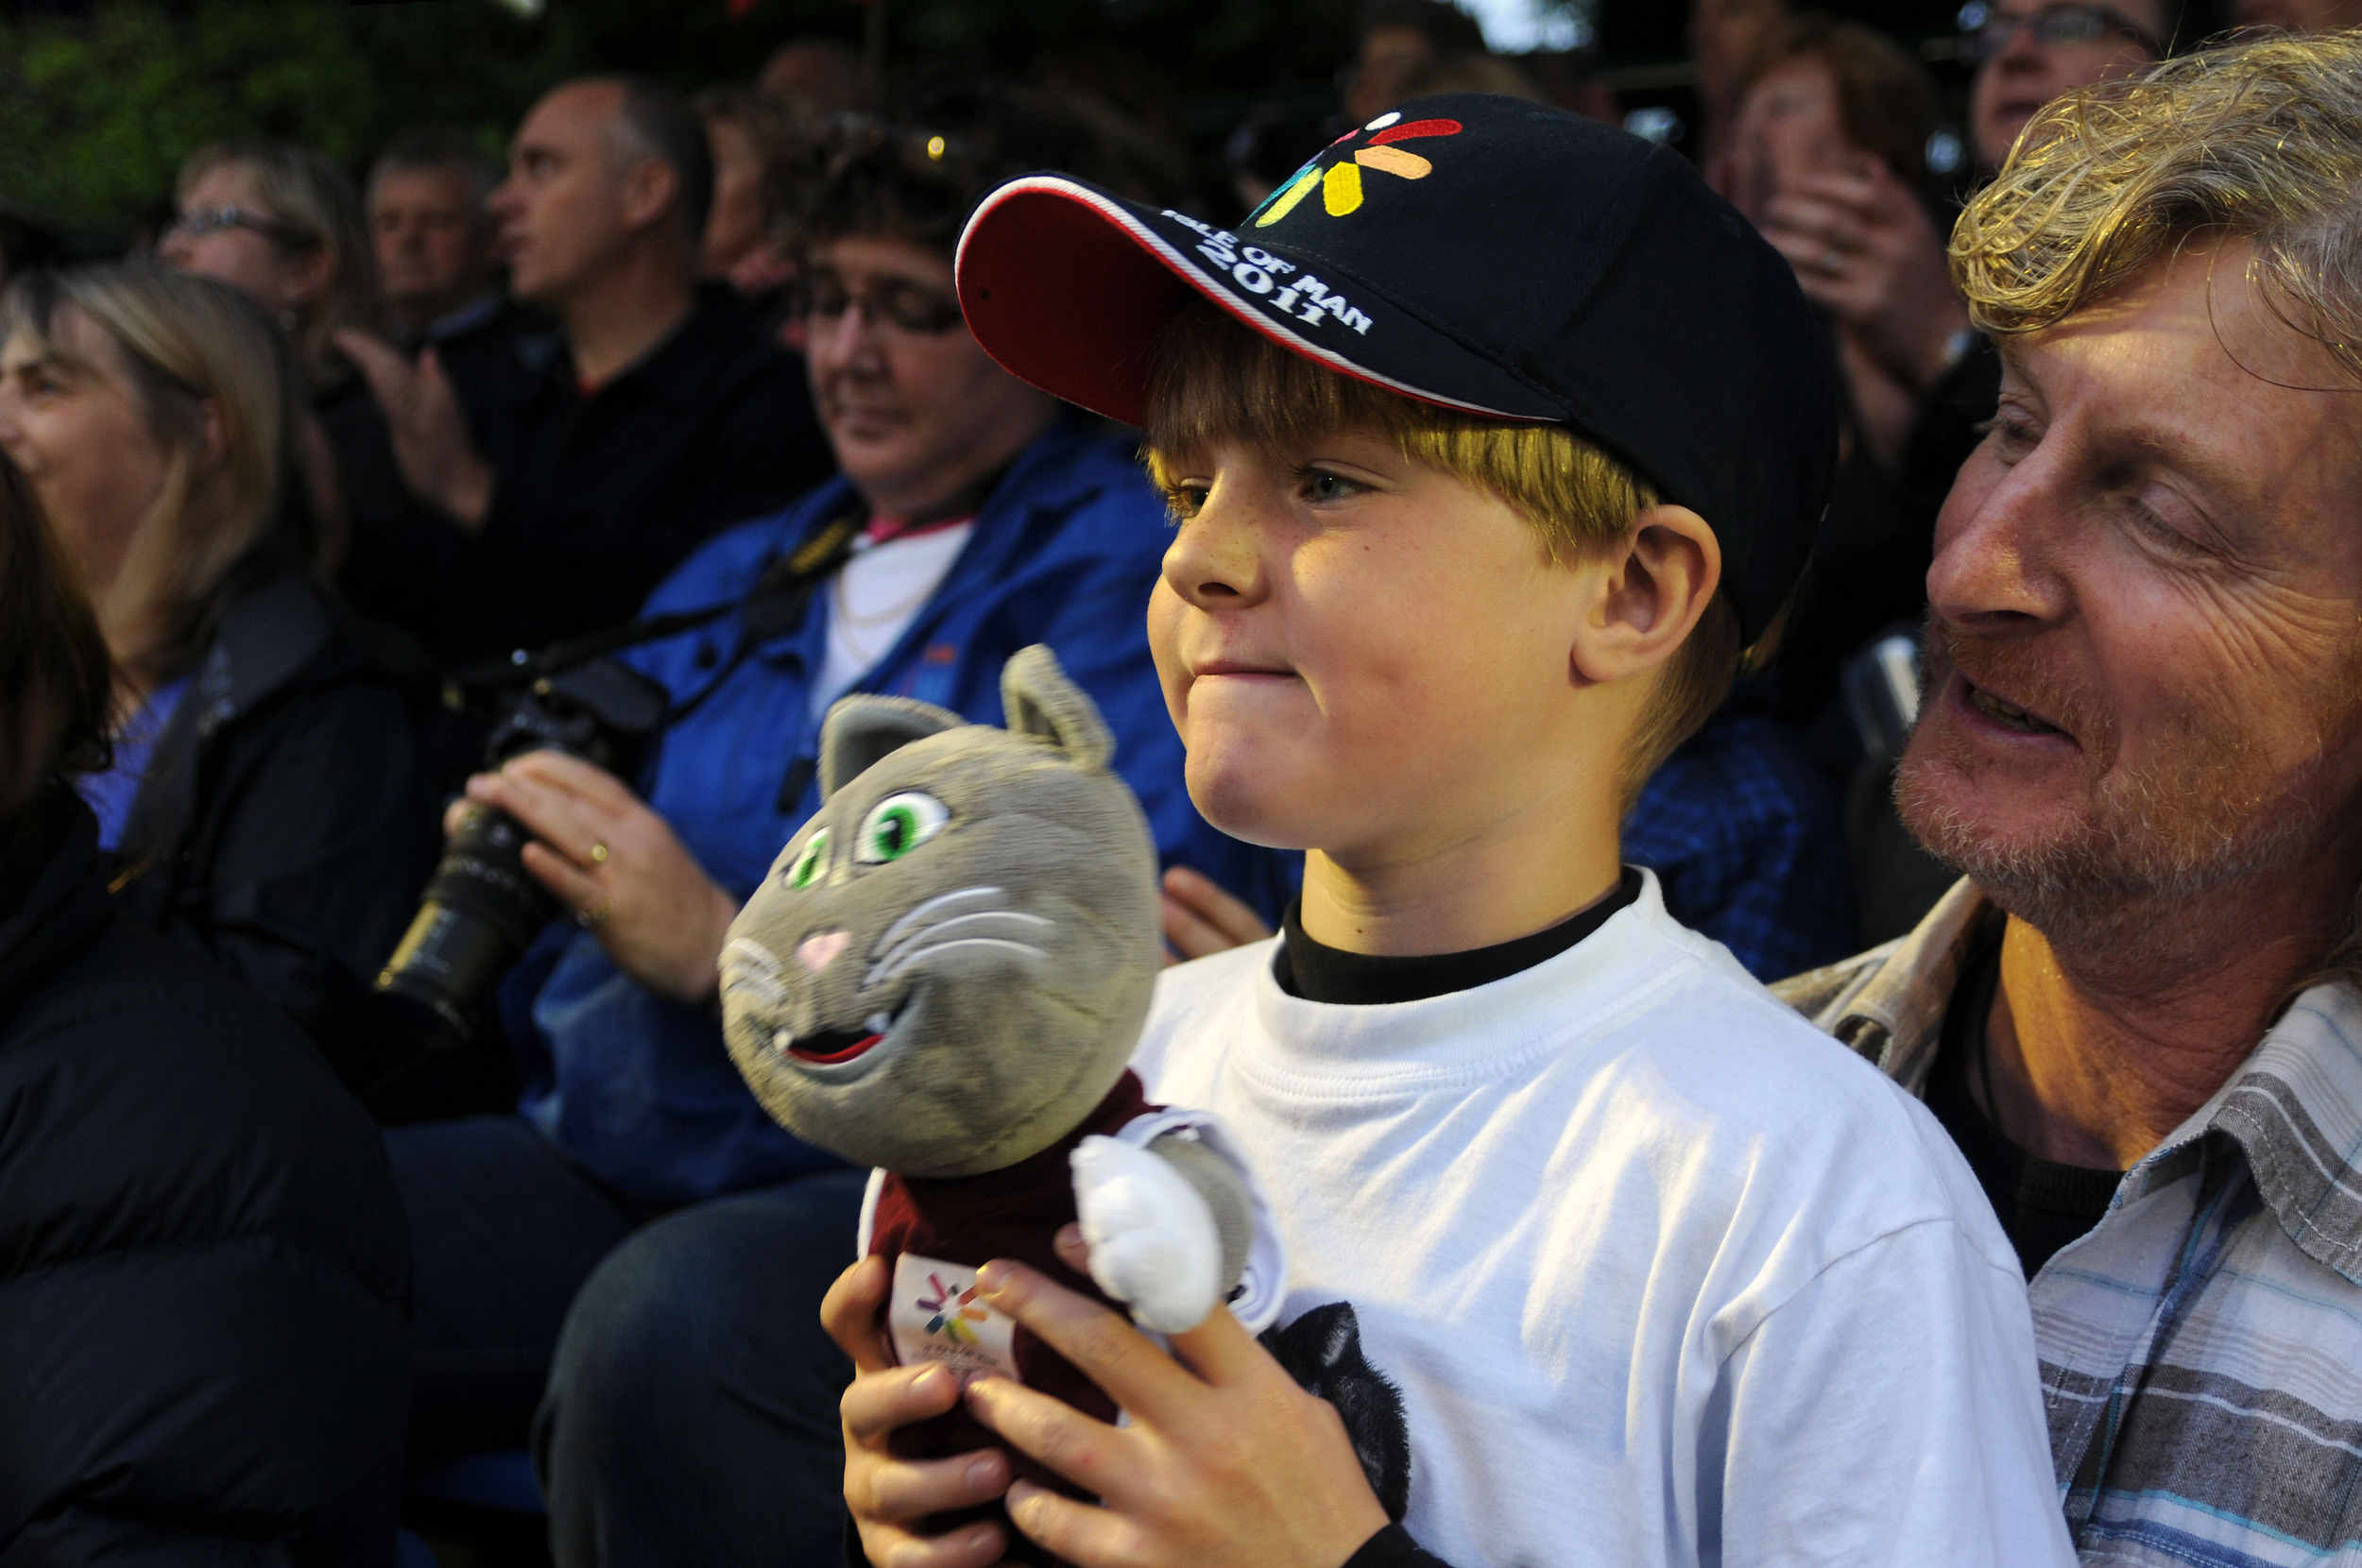 A young fan watches the opening ceremony of the 2011 Commonwealth Youth Games, hosted by the Isle of Man